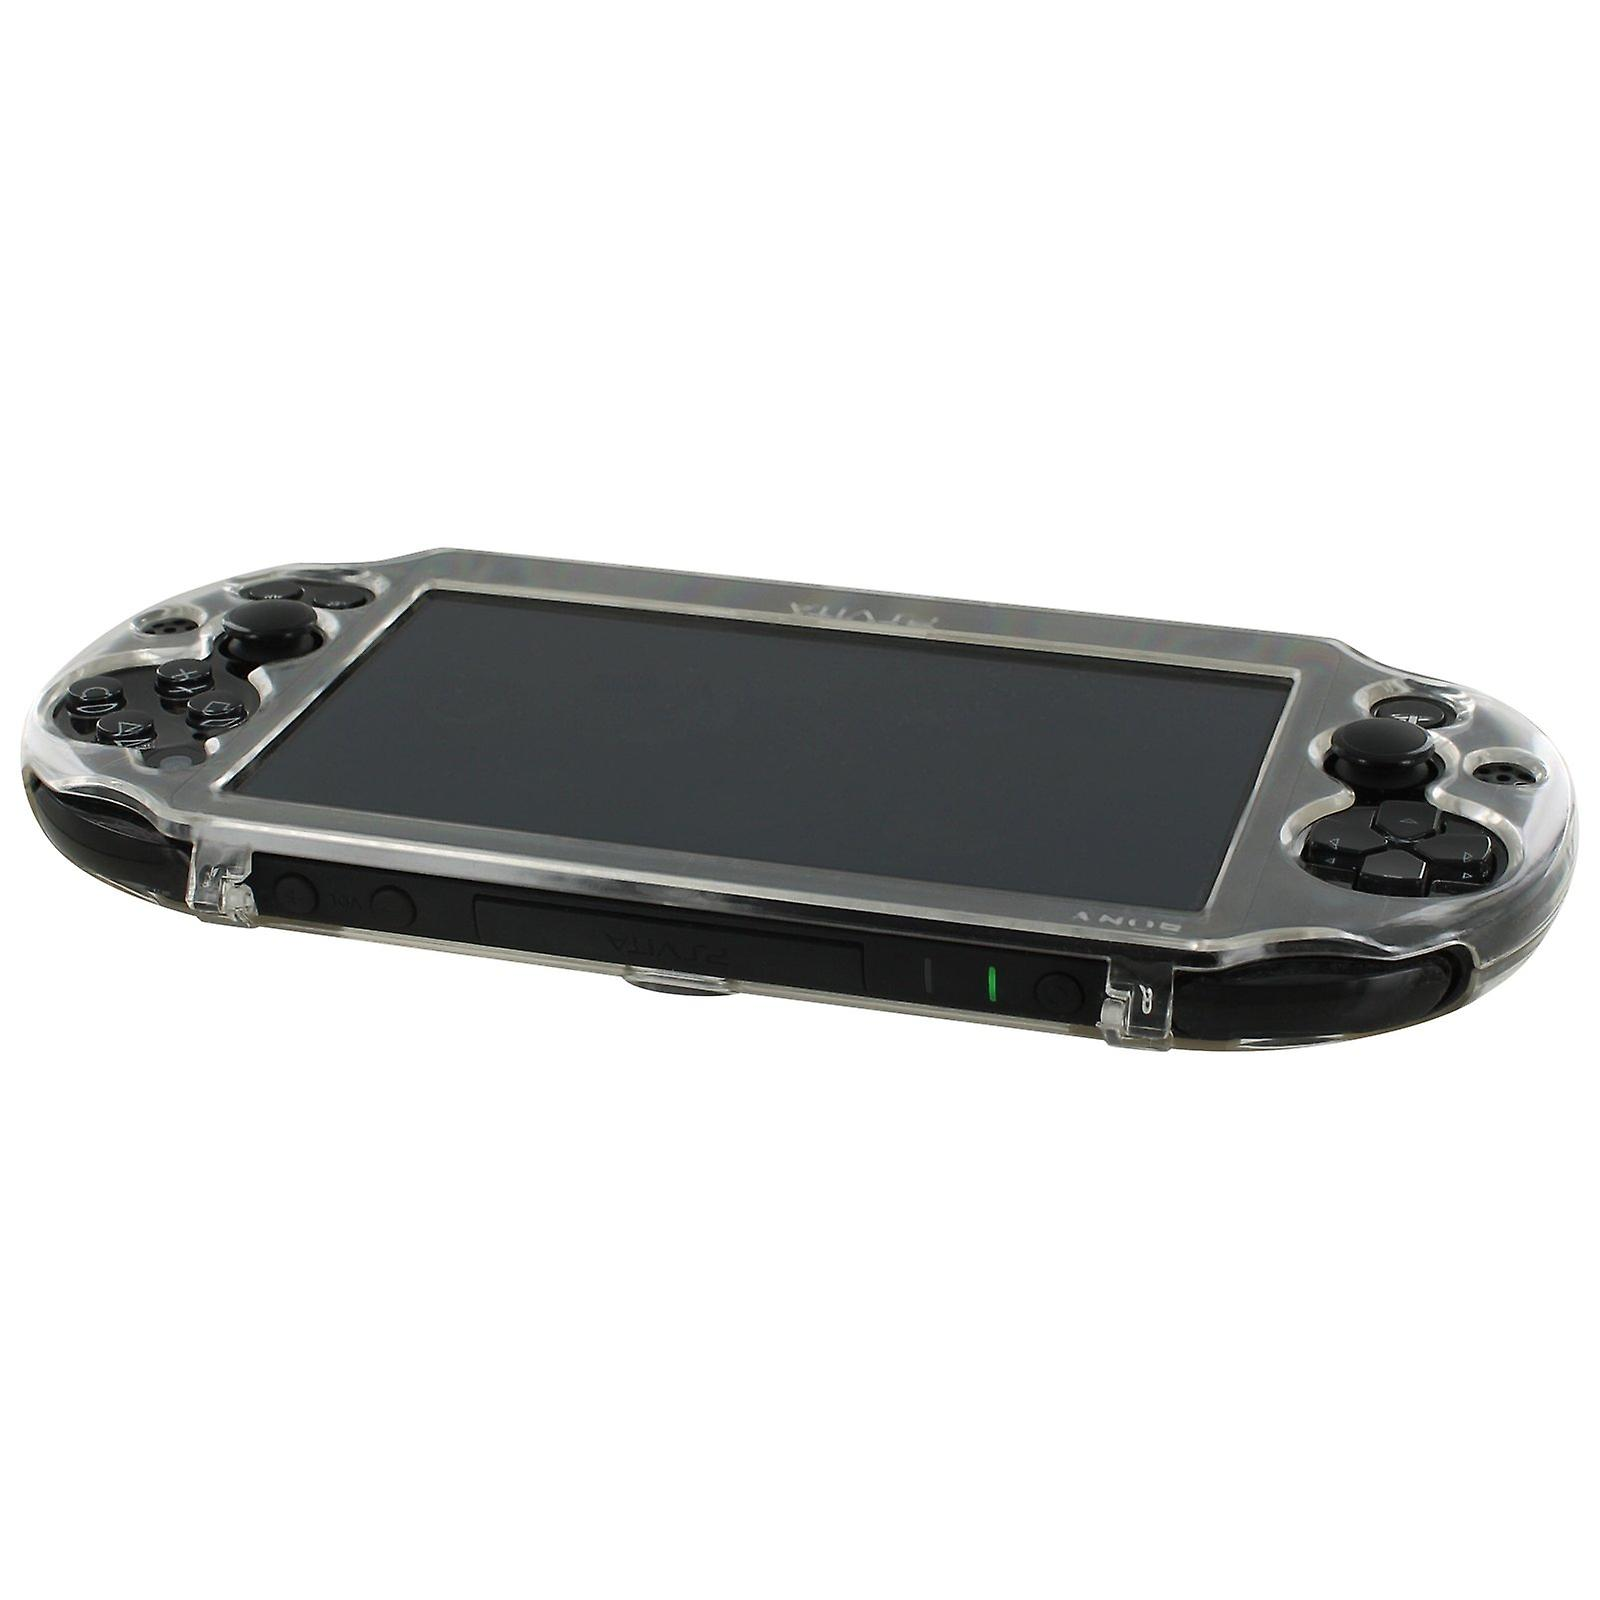 Polycarbonate hard case cover shell protective armour for sony ps vita 2000 slim - clear